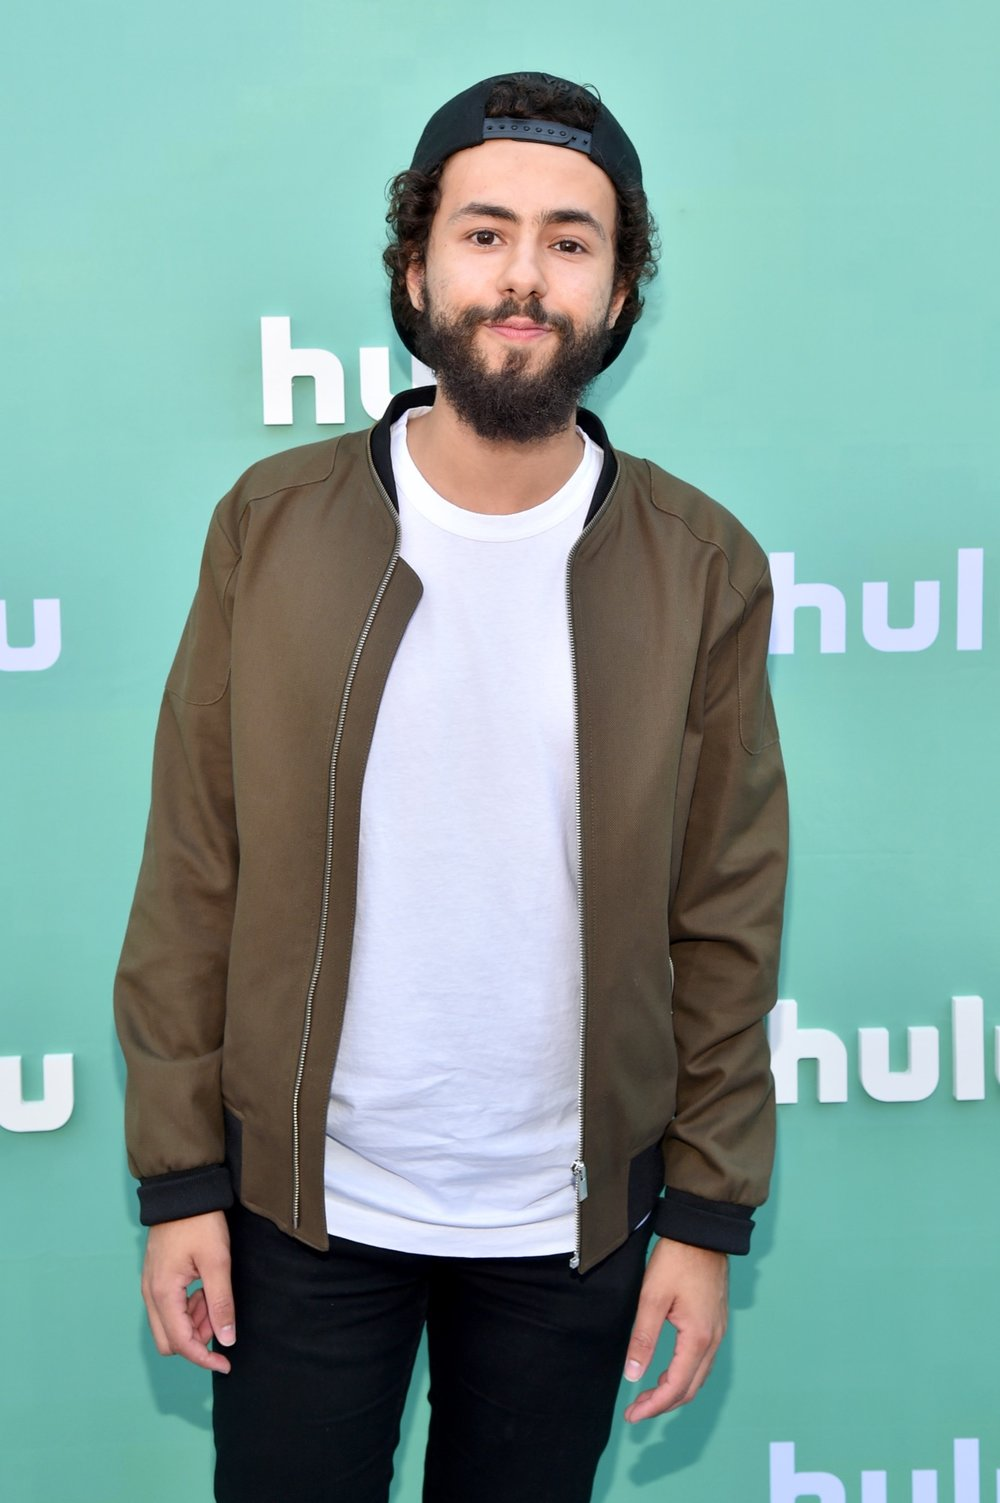 NEW YORK, NY - MAY 02:  Ramy Youssef attends the Hulu Upfront 2018 Brunch at La Sirena on May 2, 2018 in New York City.  (Photo by Bryan Bedder/Getty Images for Hulu) *** Local Caption *** Ramy Youssef